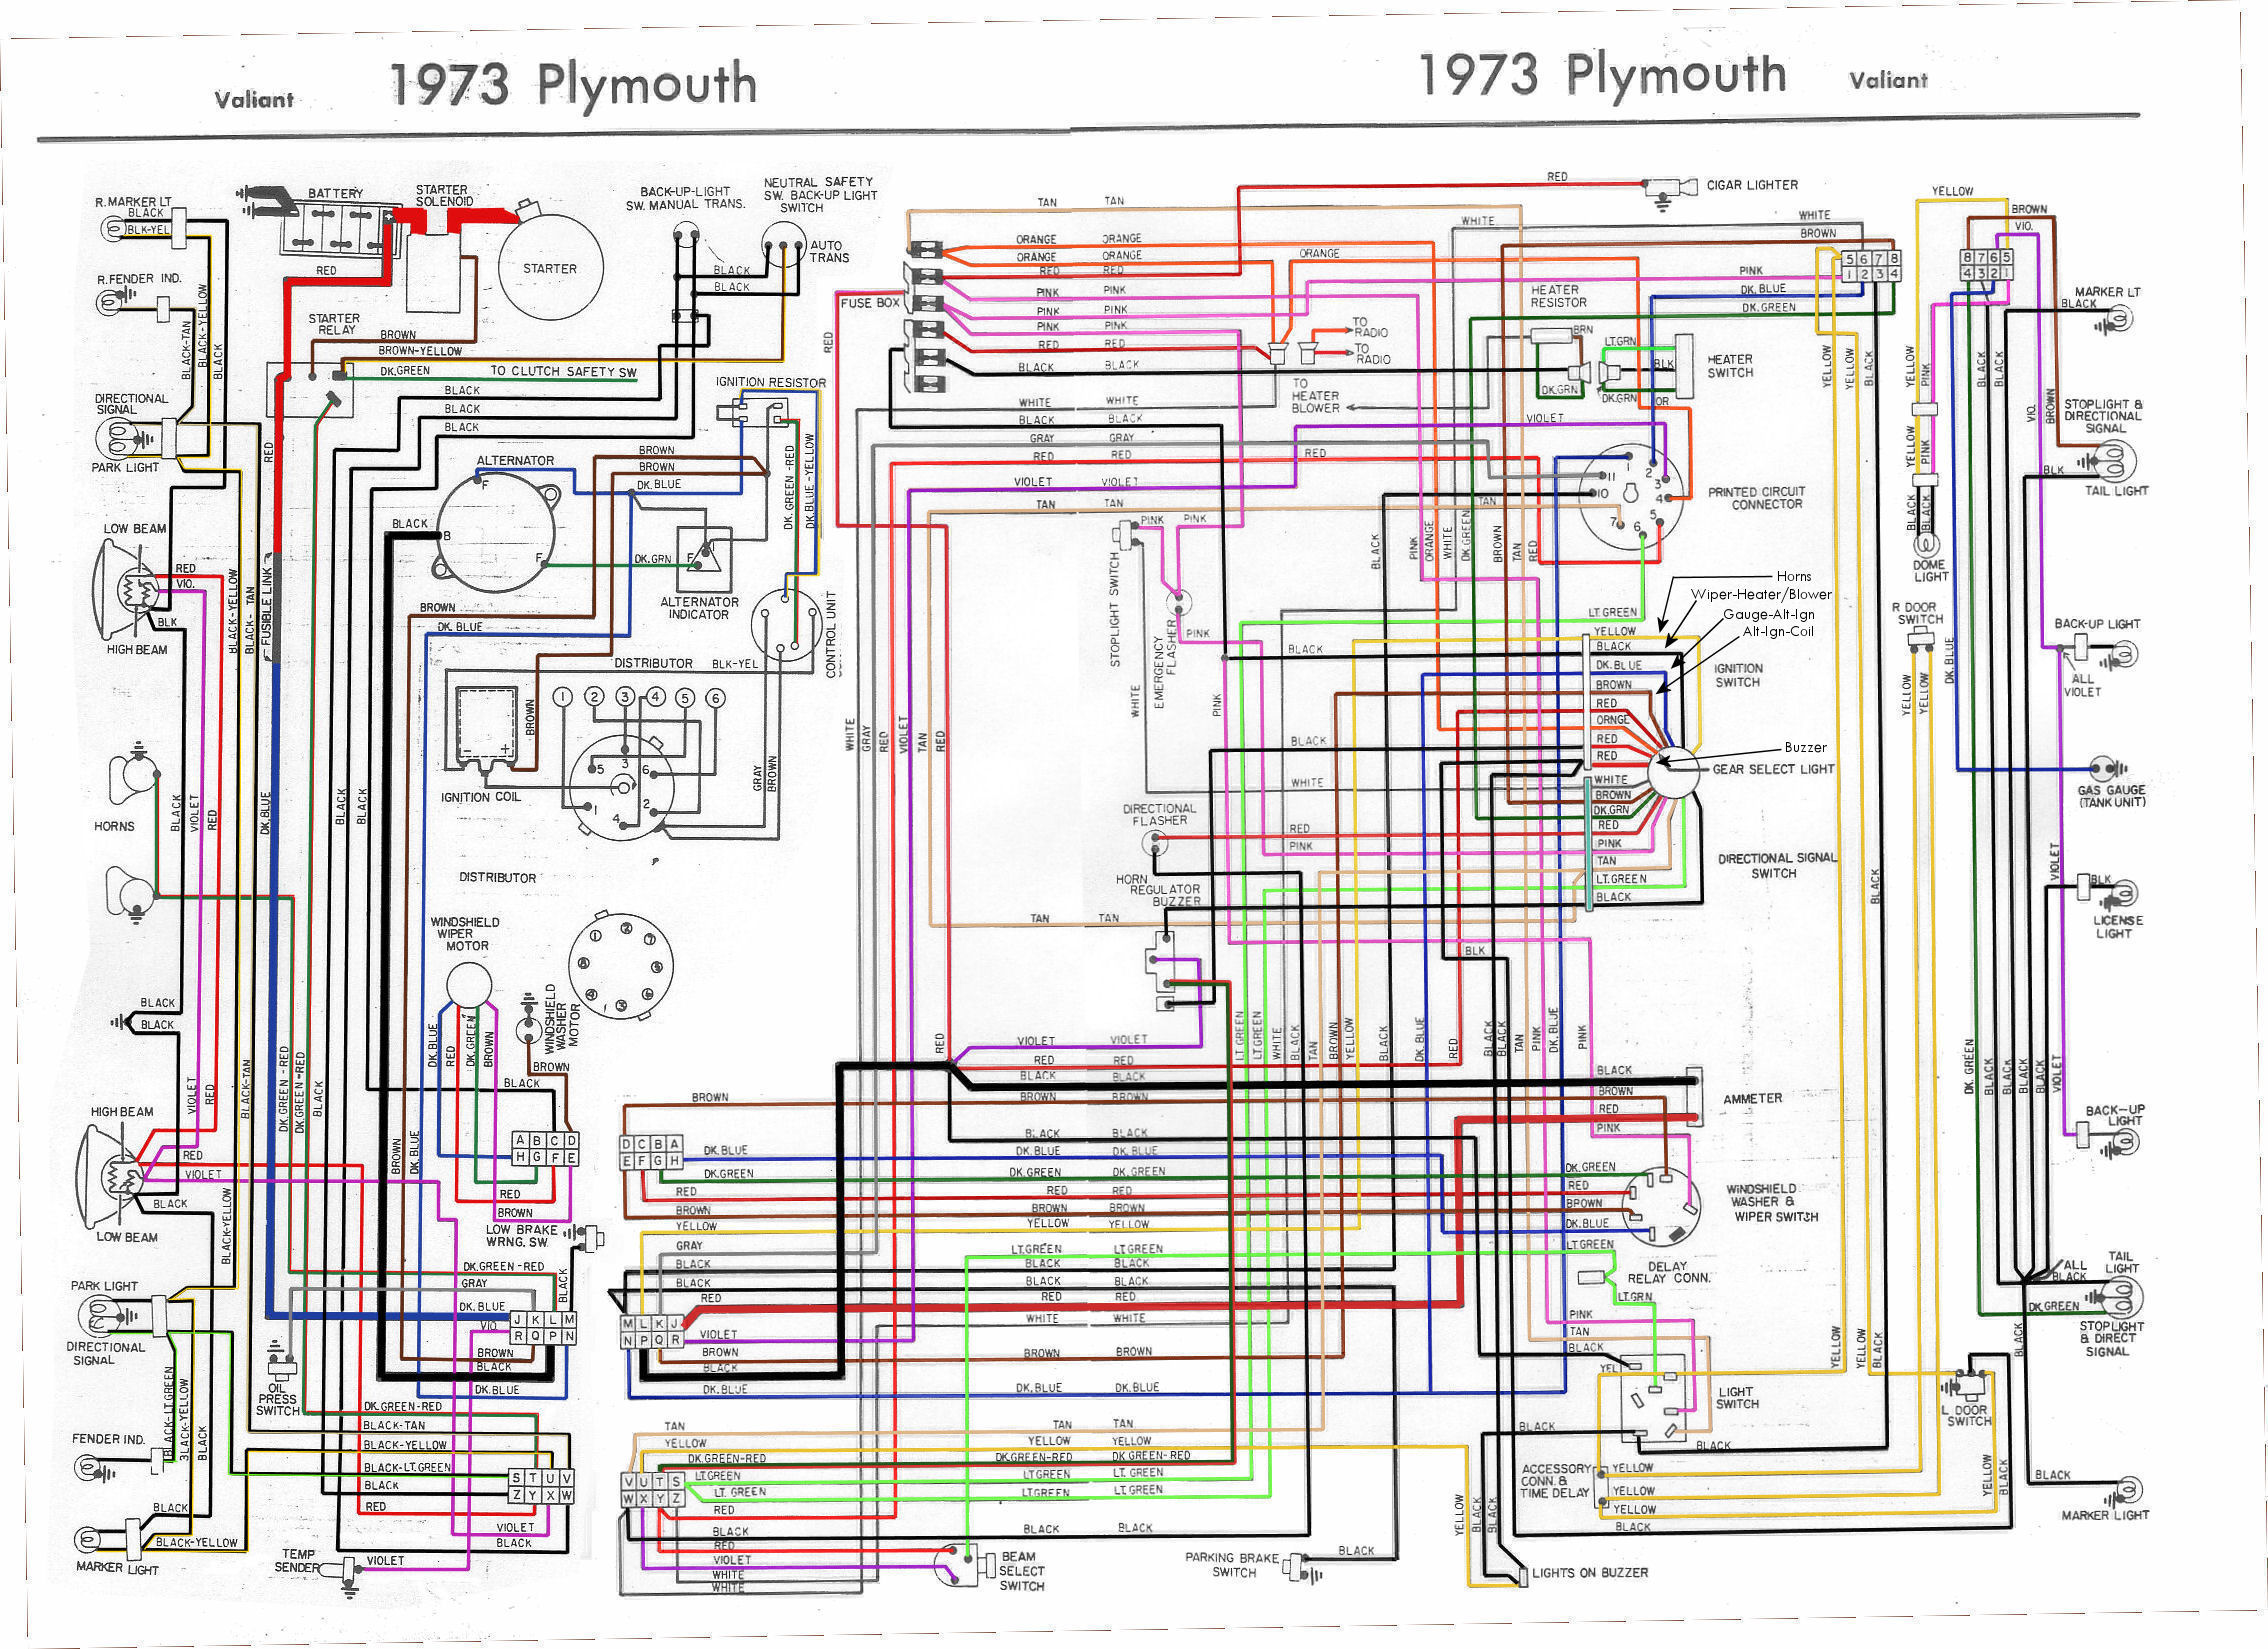 wrg 0526] wiring diagram for 1968 plymouth roadrunner 68 plymouth wiring diagram wiring diagram